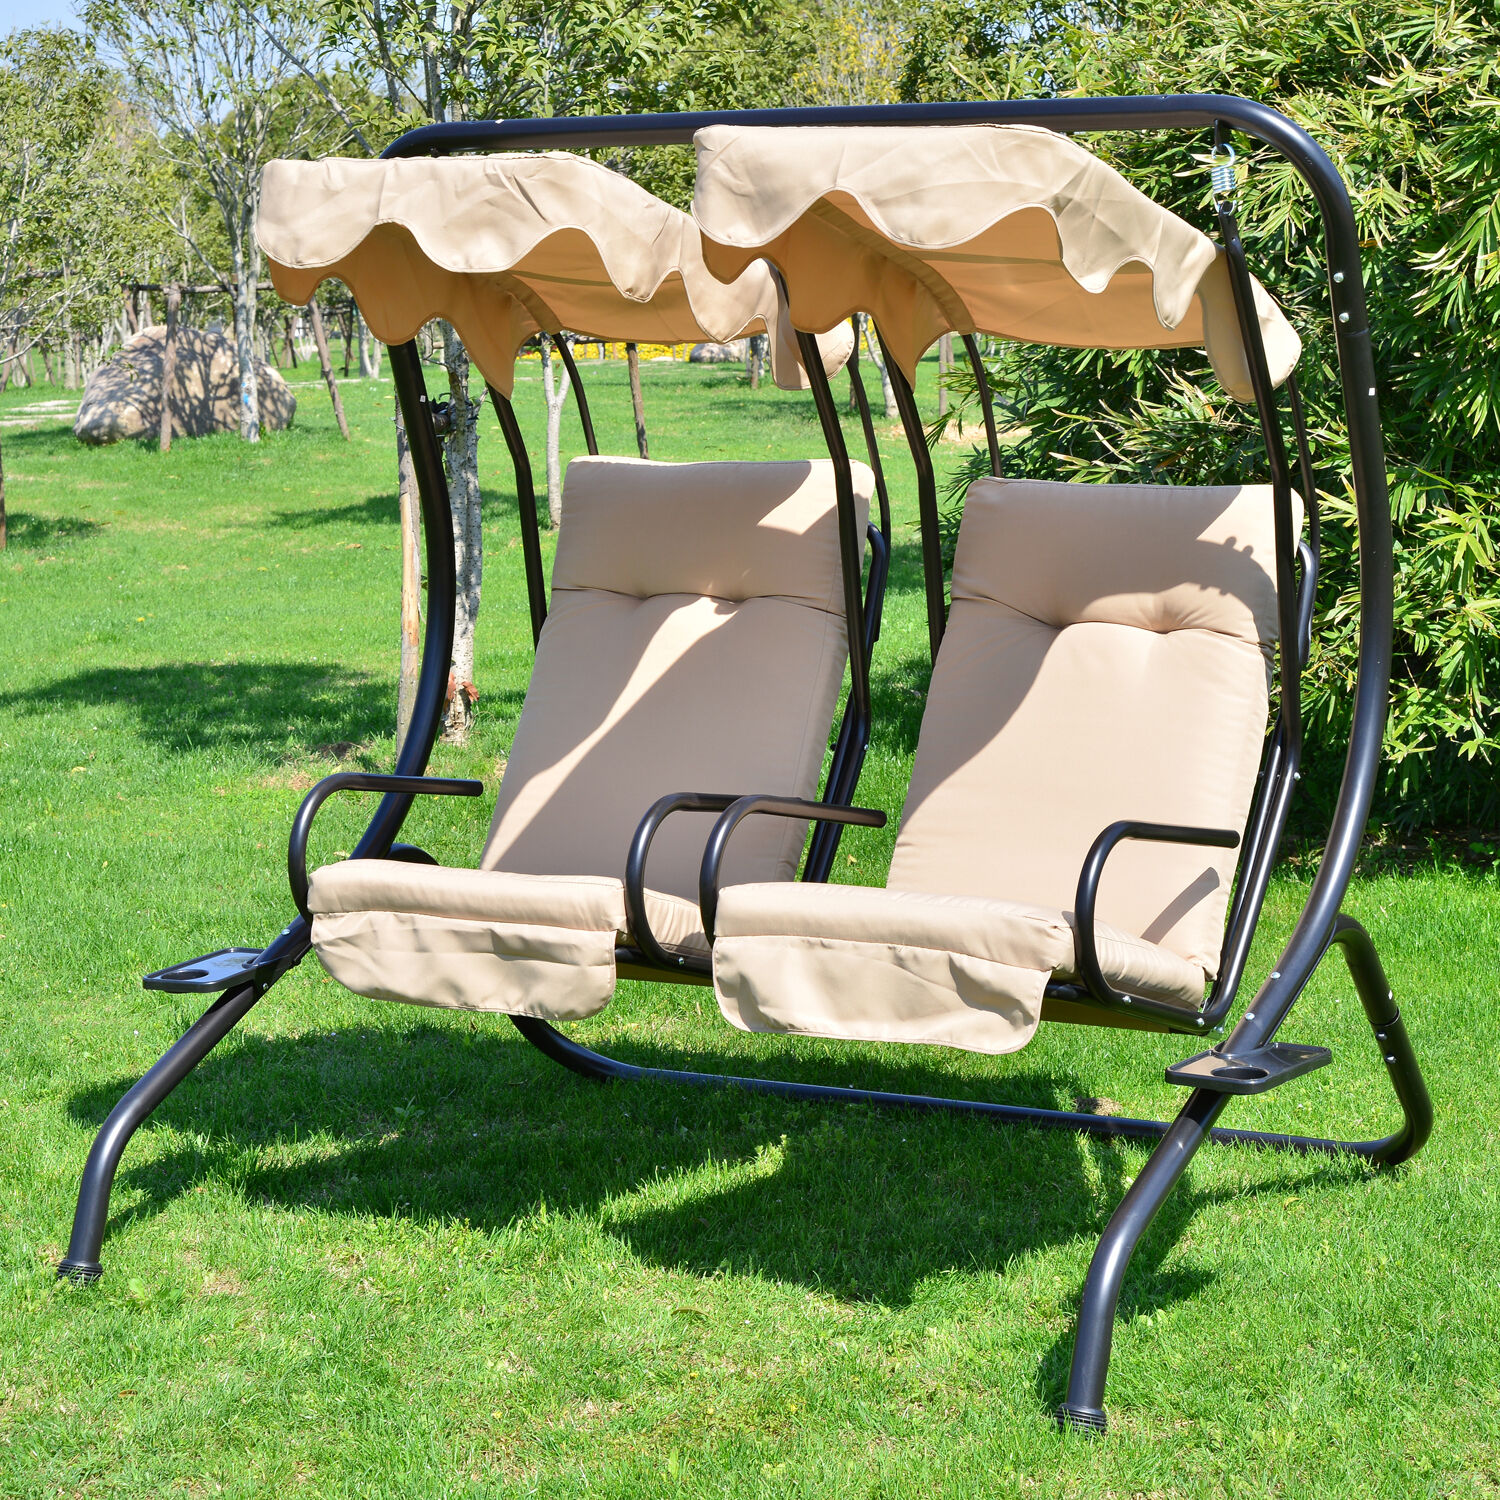 Outdoor Patio Swing Canopy 2 Person Seat Hammock Bench Yard